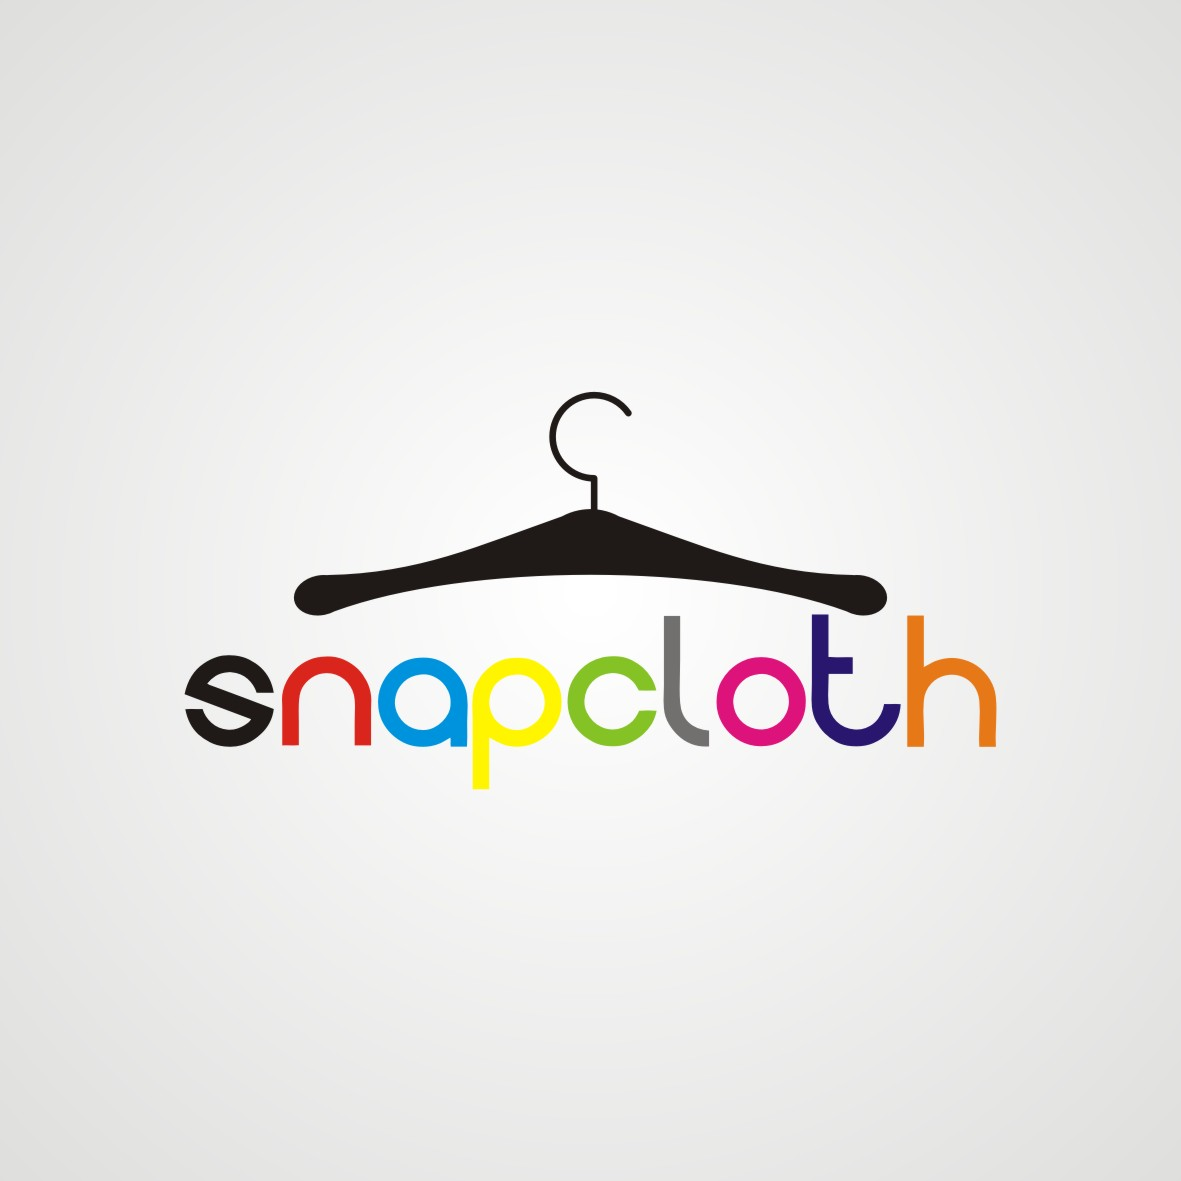 Logo Design by arteo_design - Entry No. 73 in the Logo Design Contest Snapcloth Logo Design.